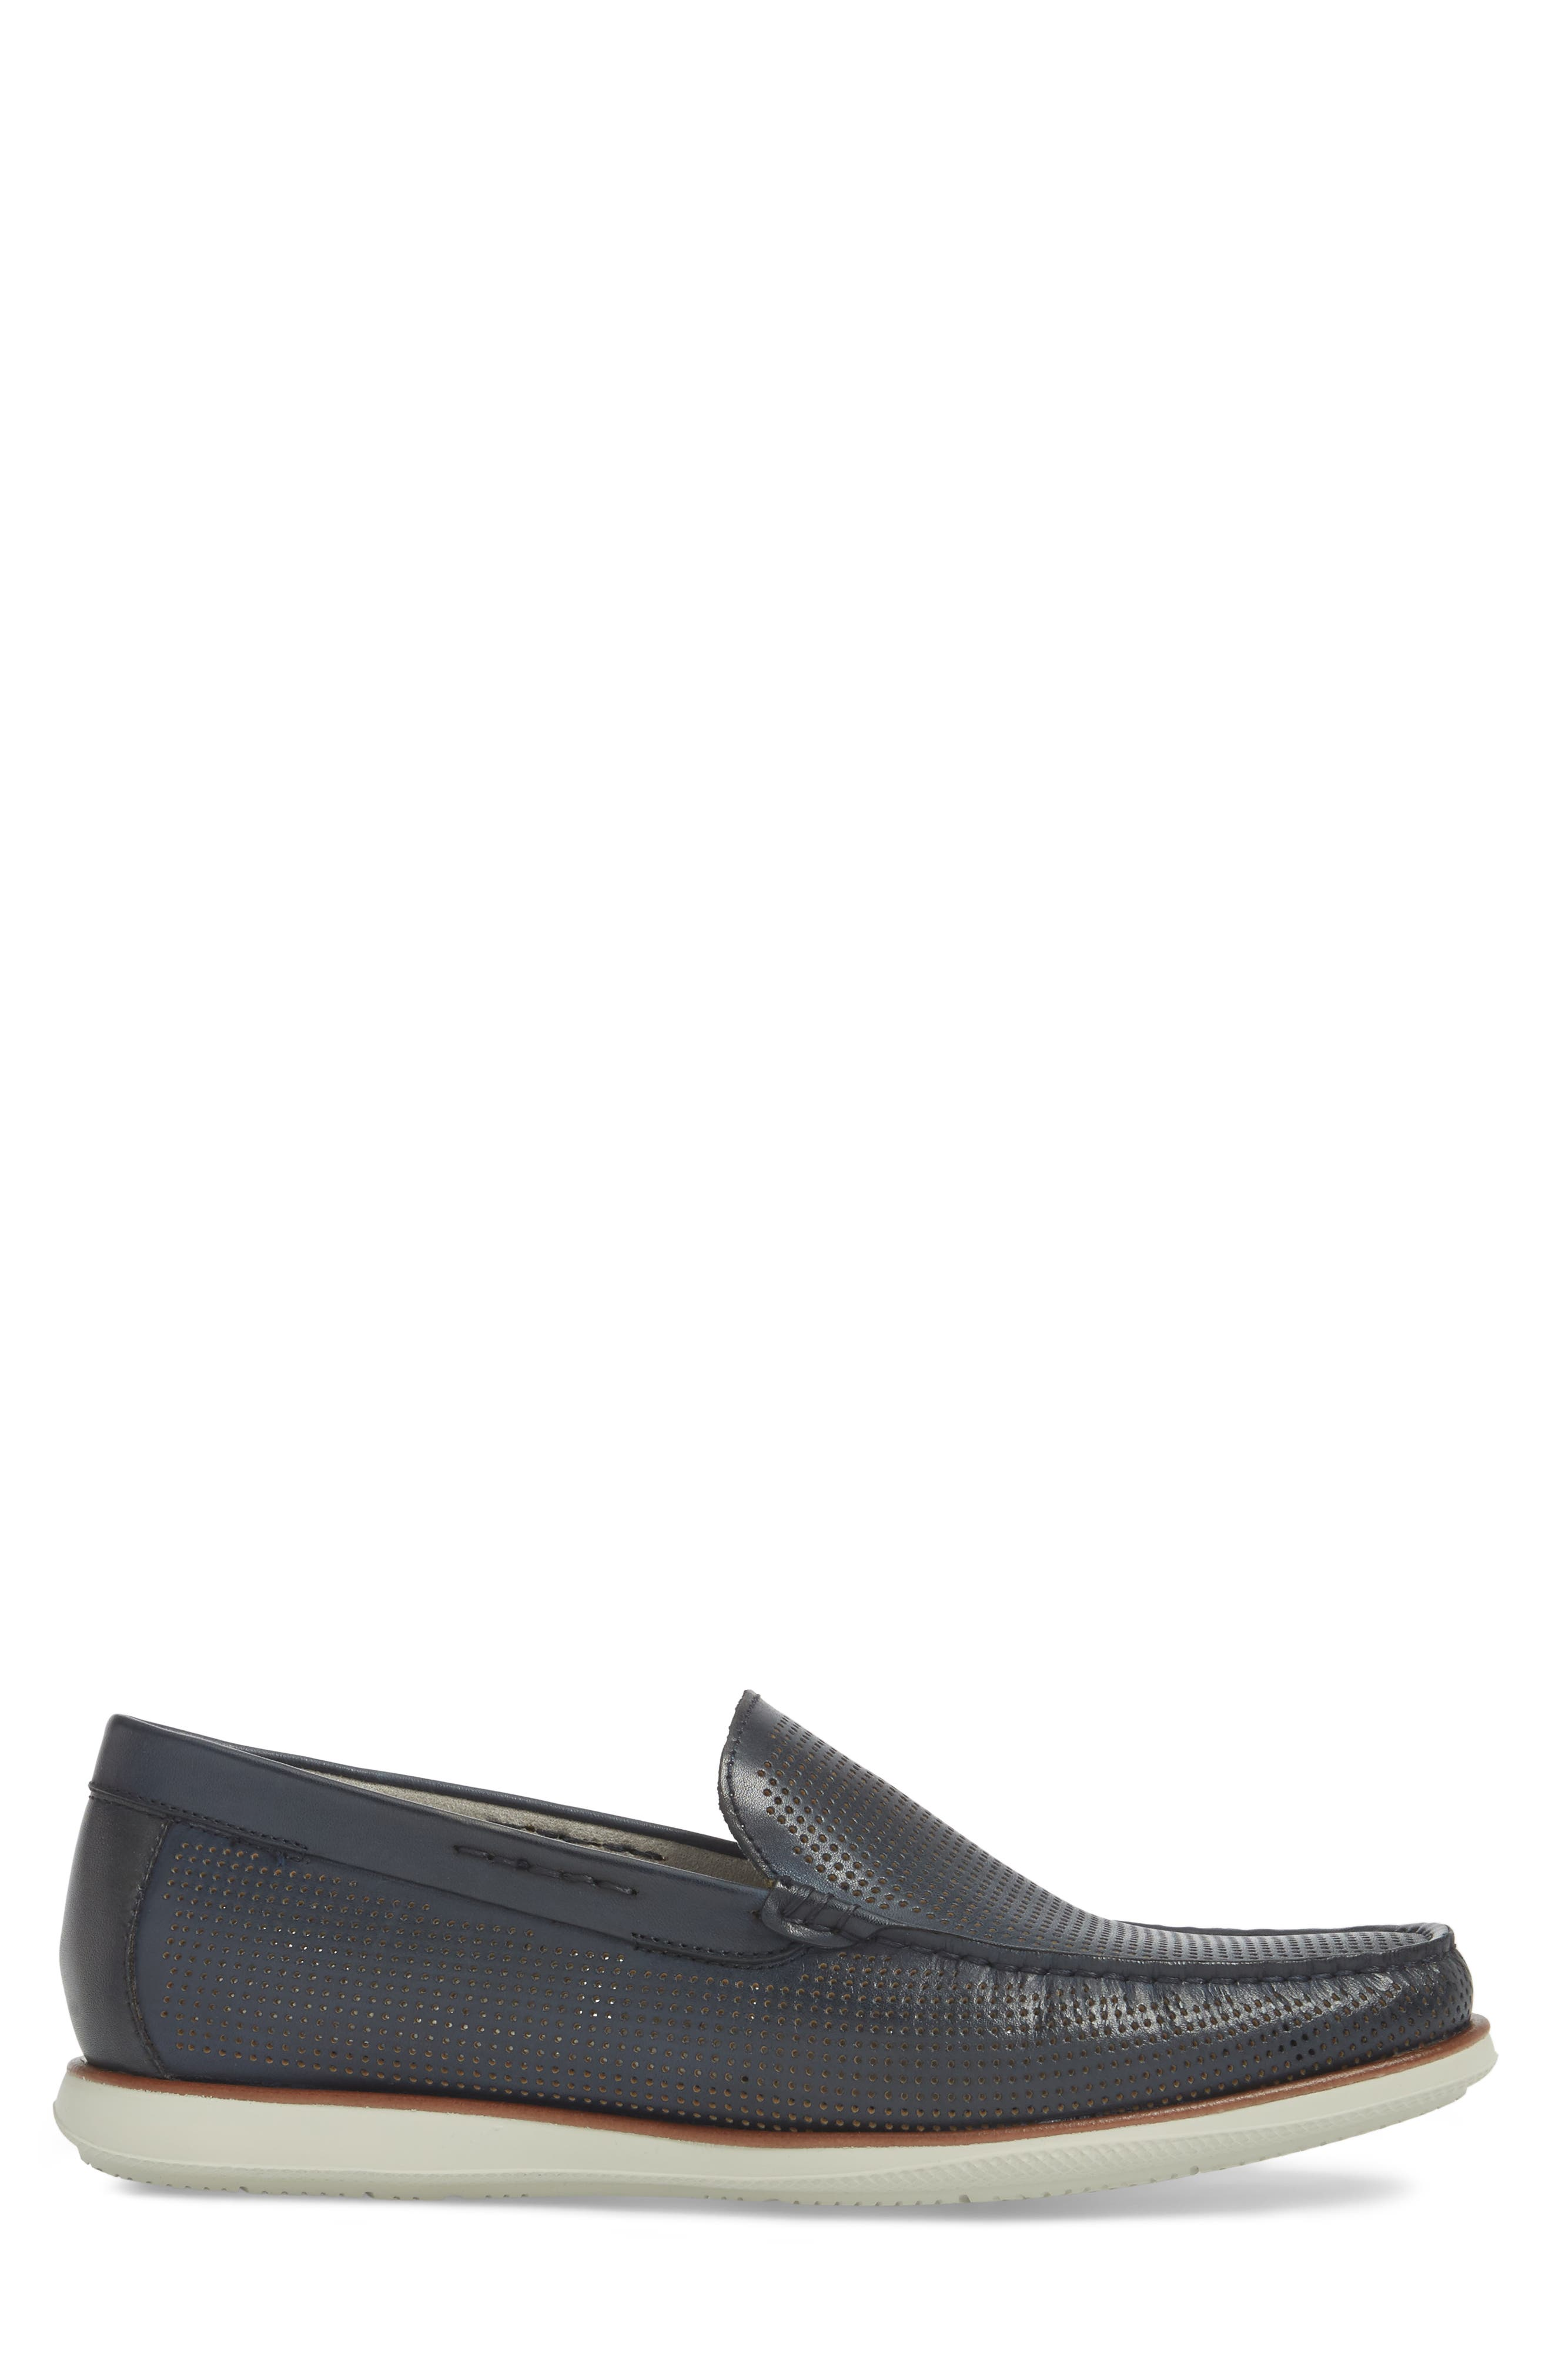 Cyrus Venetian Loafer,                             Alternate thumbnail 9, color,